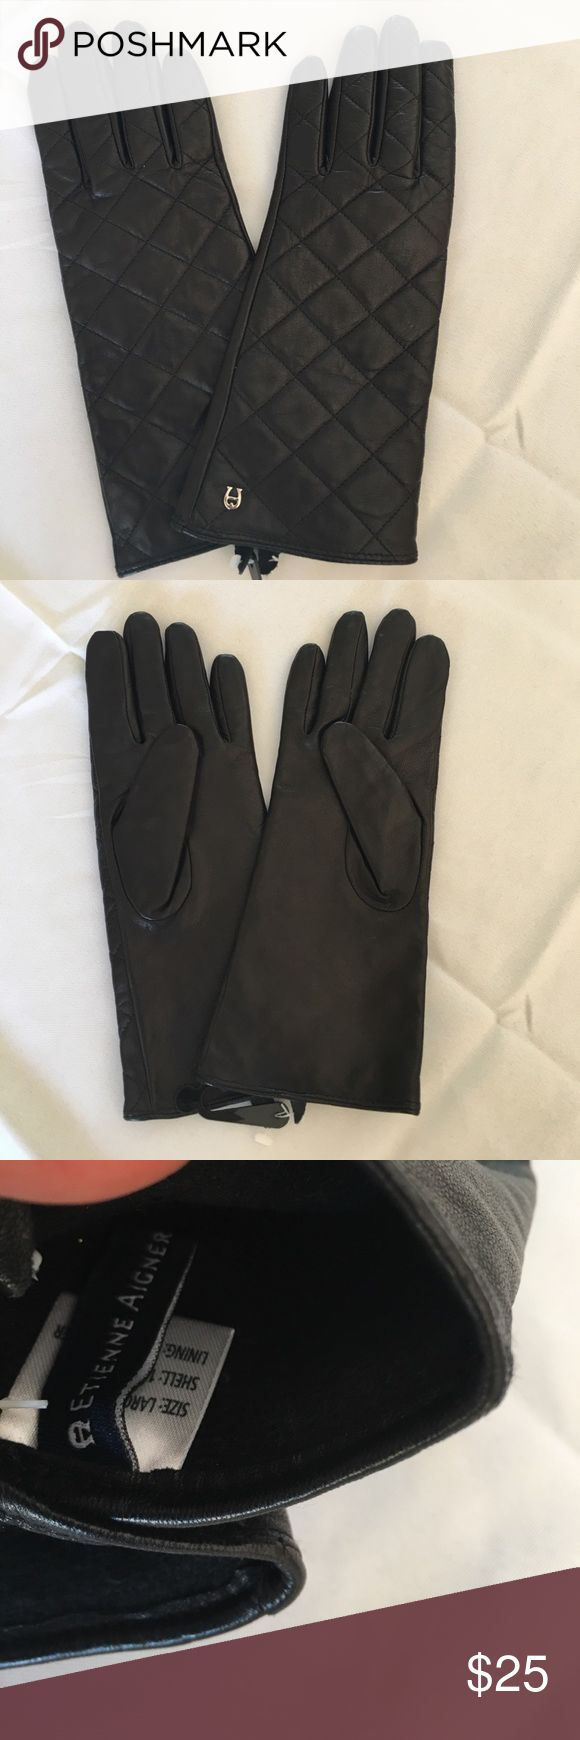 Etienne Aigner leather gloves Etienne Aigner black quilted leather gloves Etienne Aigner Accessories Gloves & Mittens